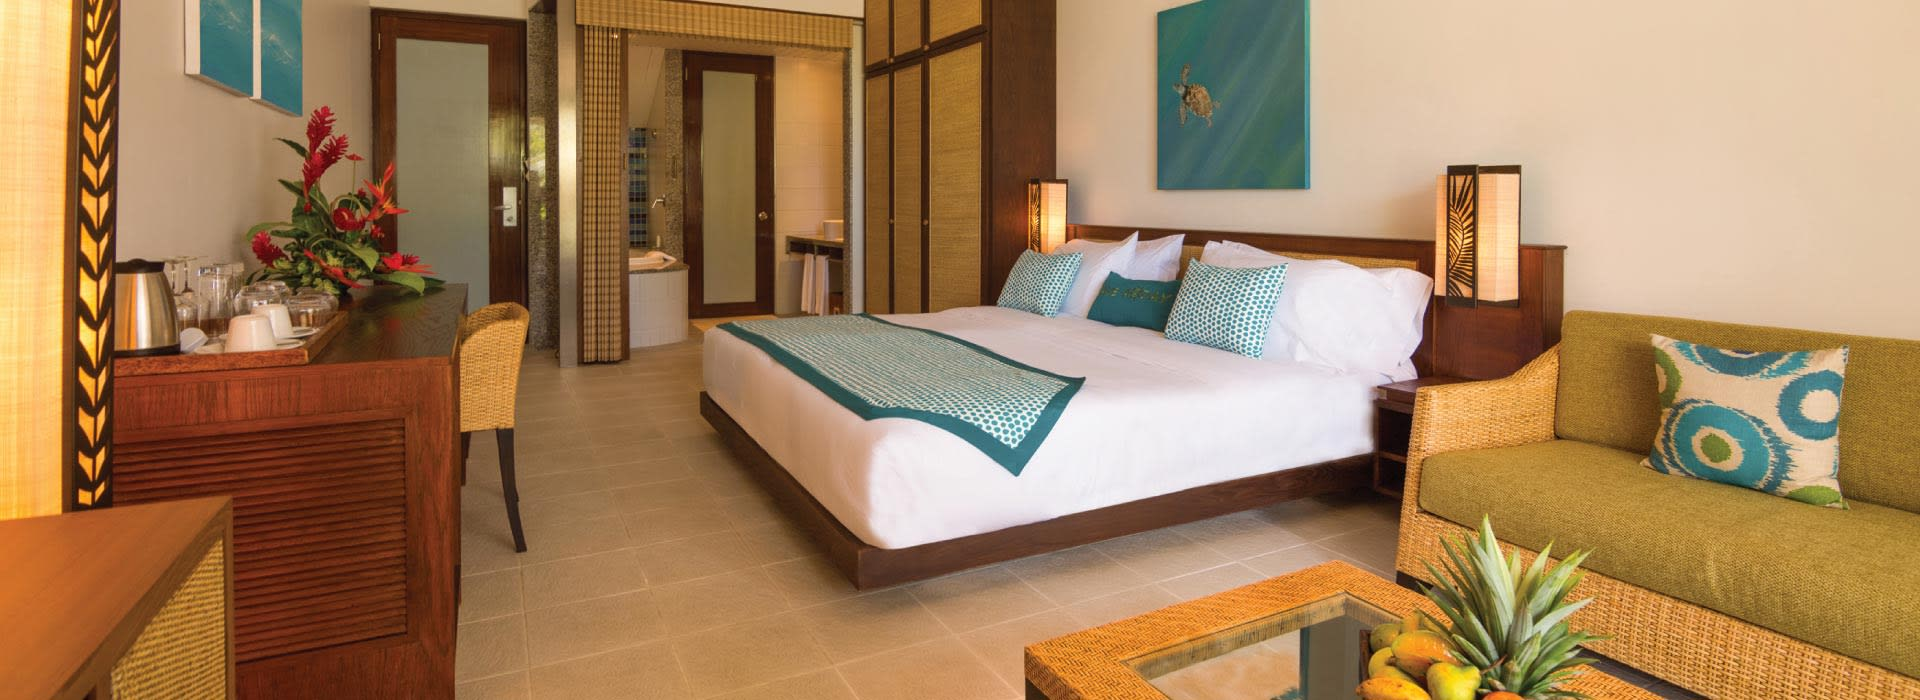 Access room of AVANI Seychelles Beach Resort